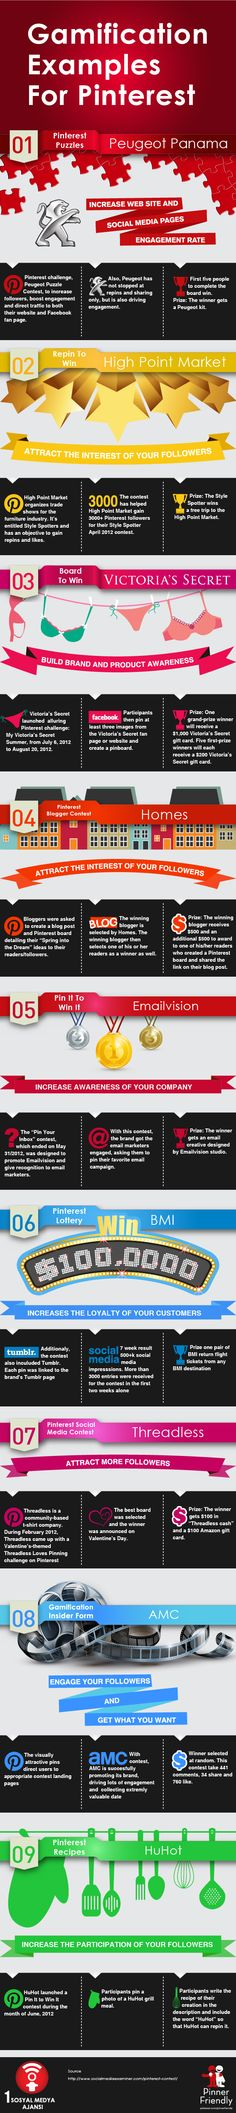 #Pinterest #infographics #gamification